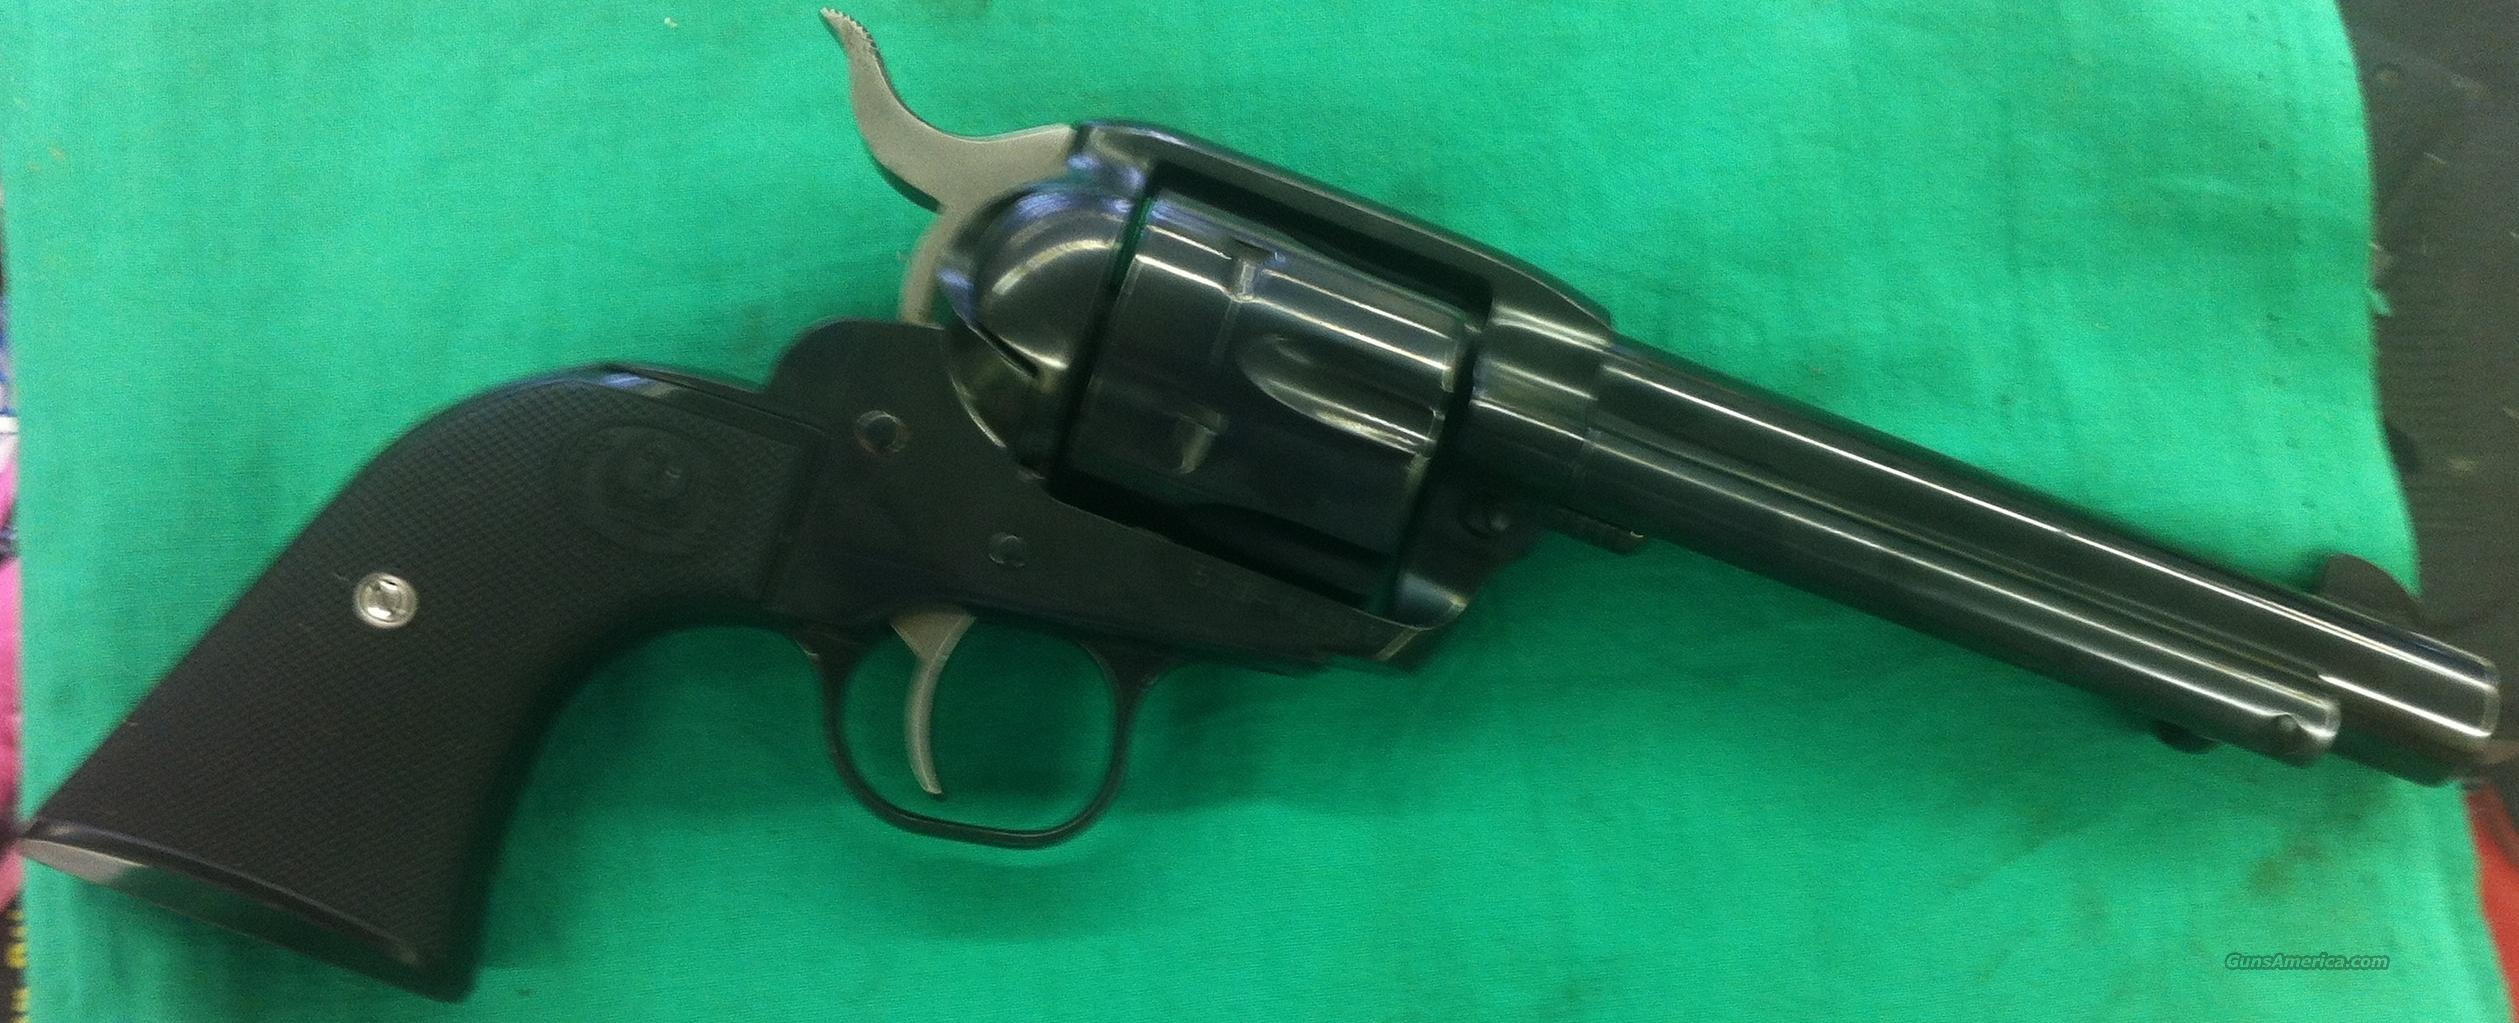 Ruger New Vaquero 357 Mag Revolver  Guns > Pistols > Ruger Single Action Revolvers > Single Six Type